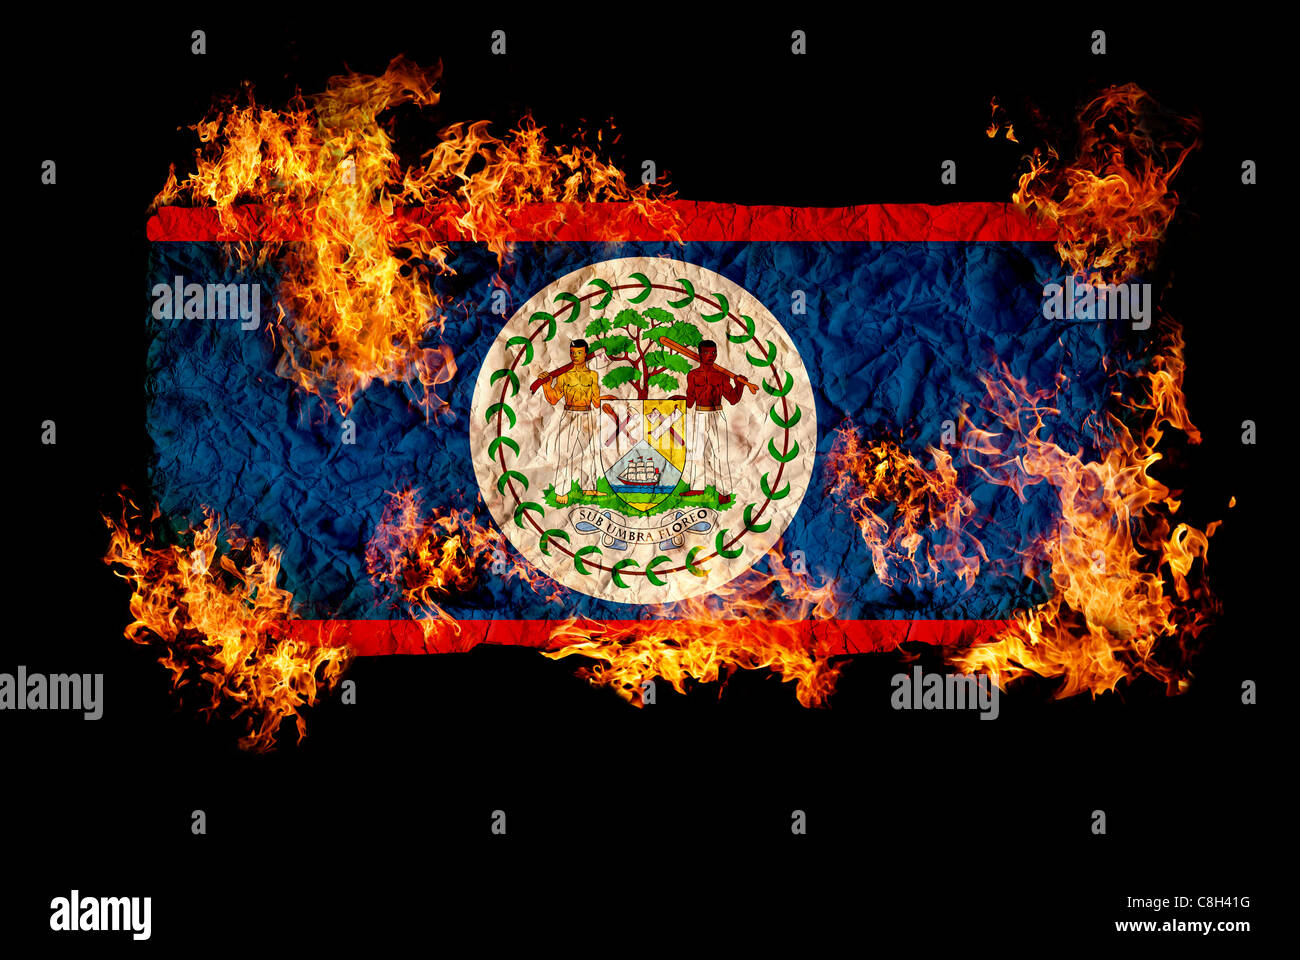 National symbols and flag of belize stock photo royalty free national symbols and flag of belize biocorpaavc Image collections